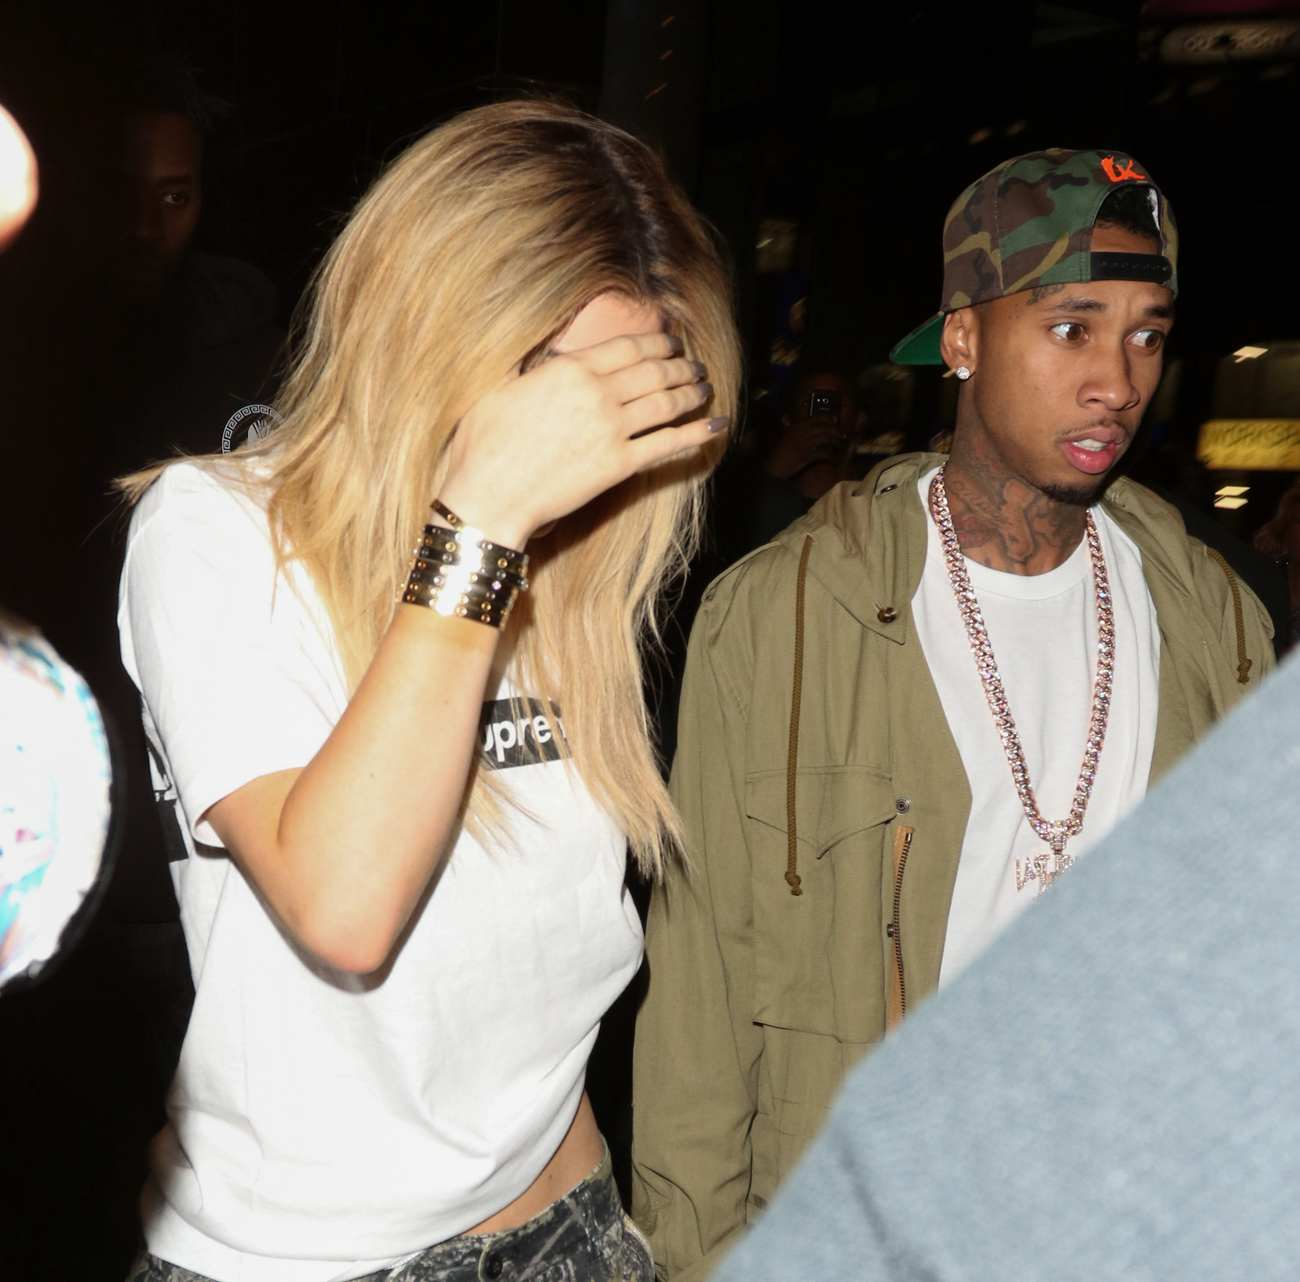 Kylie Jenner and Tyga Arrive at LAX Airport-2